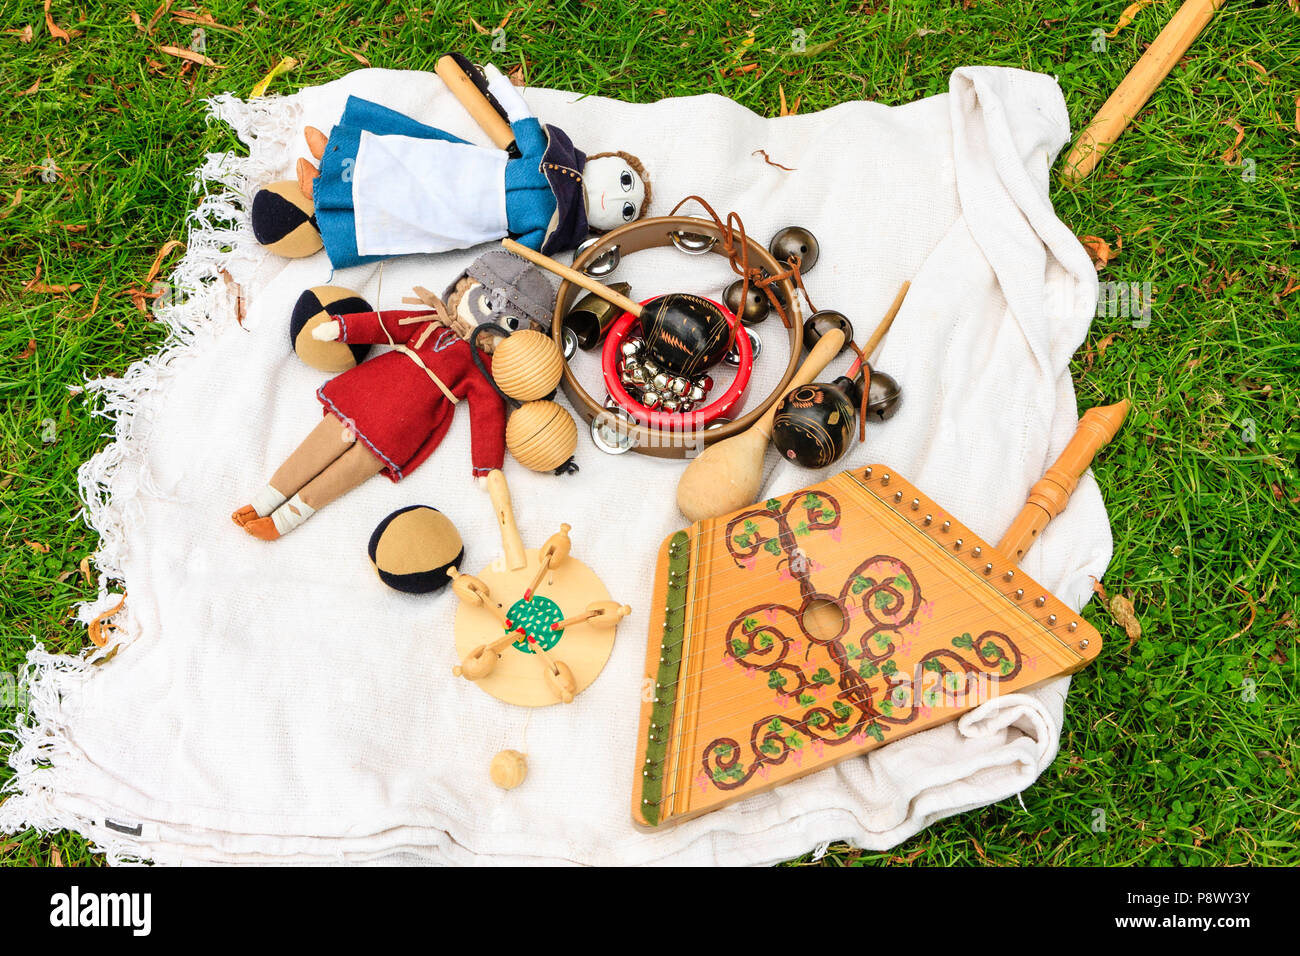 Re-enactment, living history. Medieval Middles ages collection of children's toys and musical instrument, a plucked sultry on display. - Stock Image